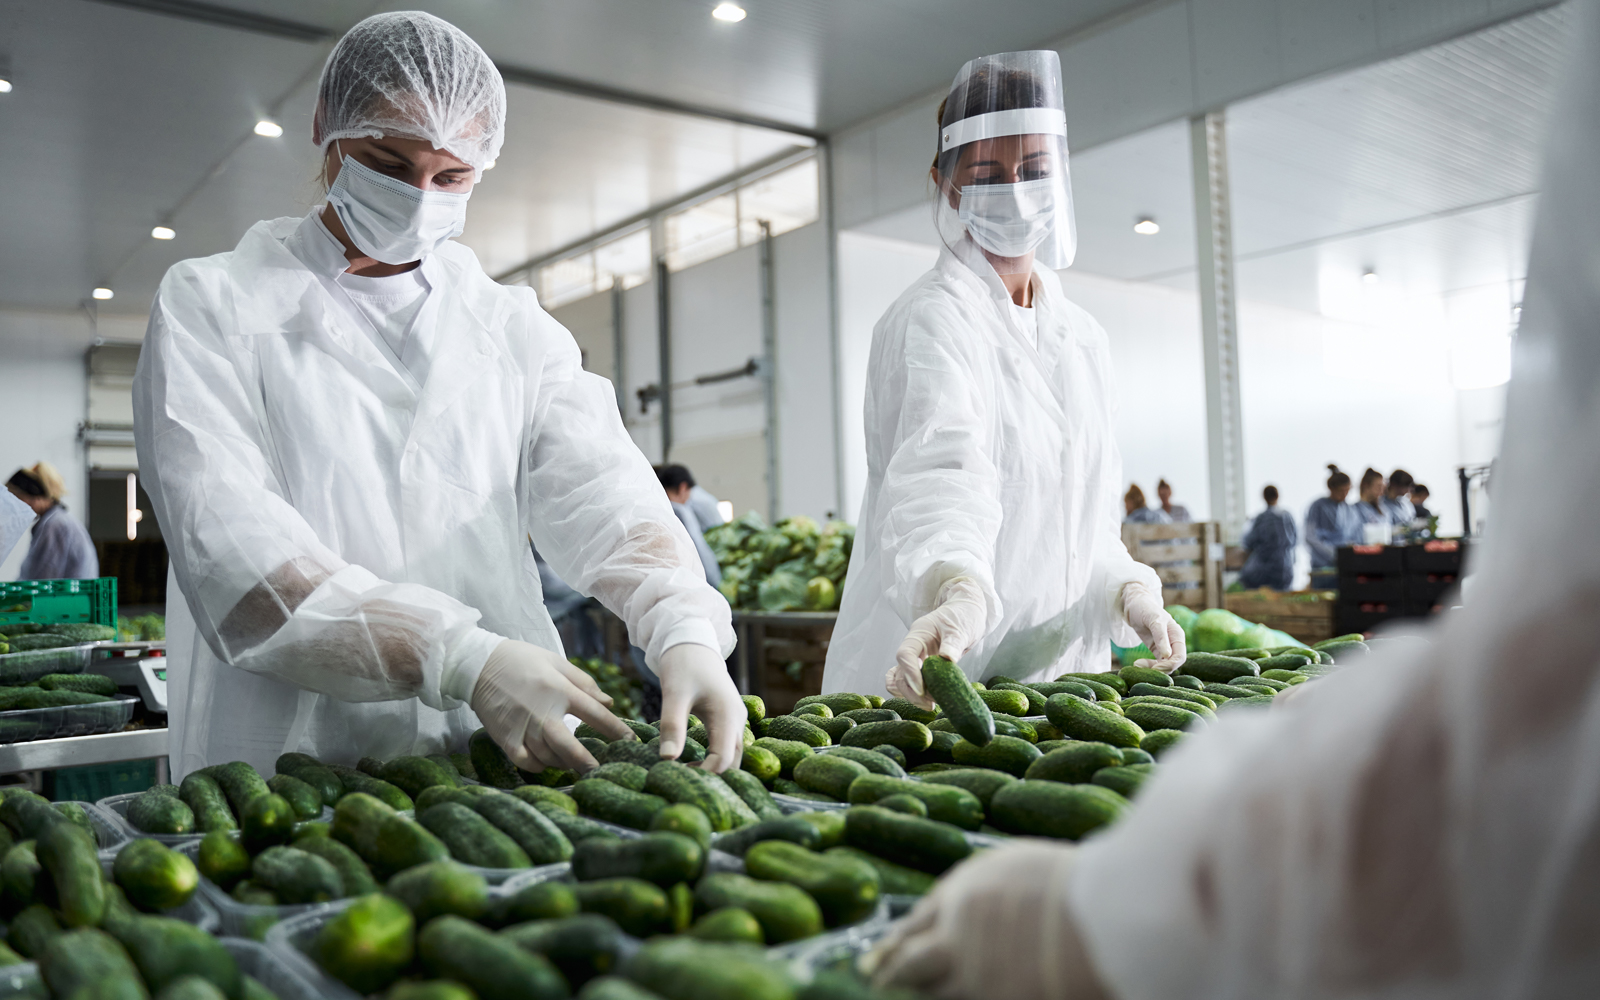 Food processing workers sorting cucumbers on a conveyor belt